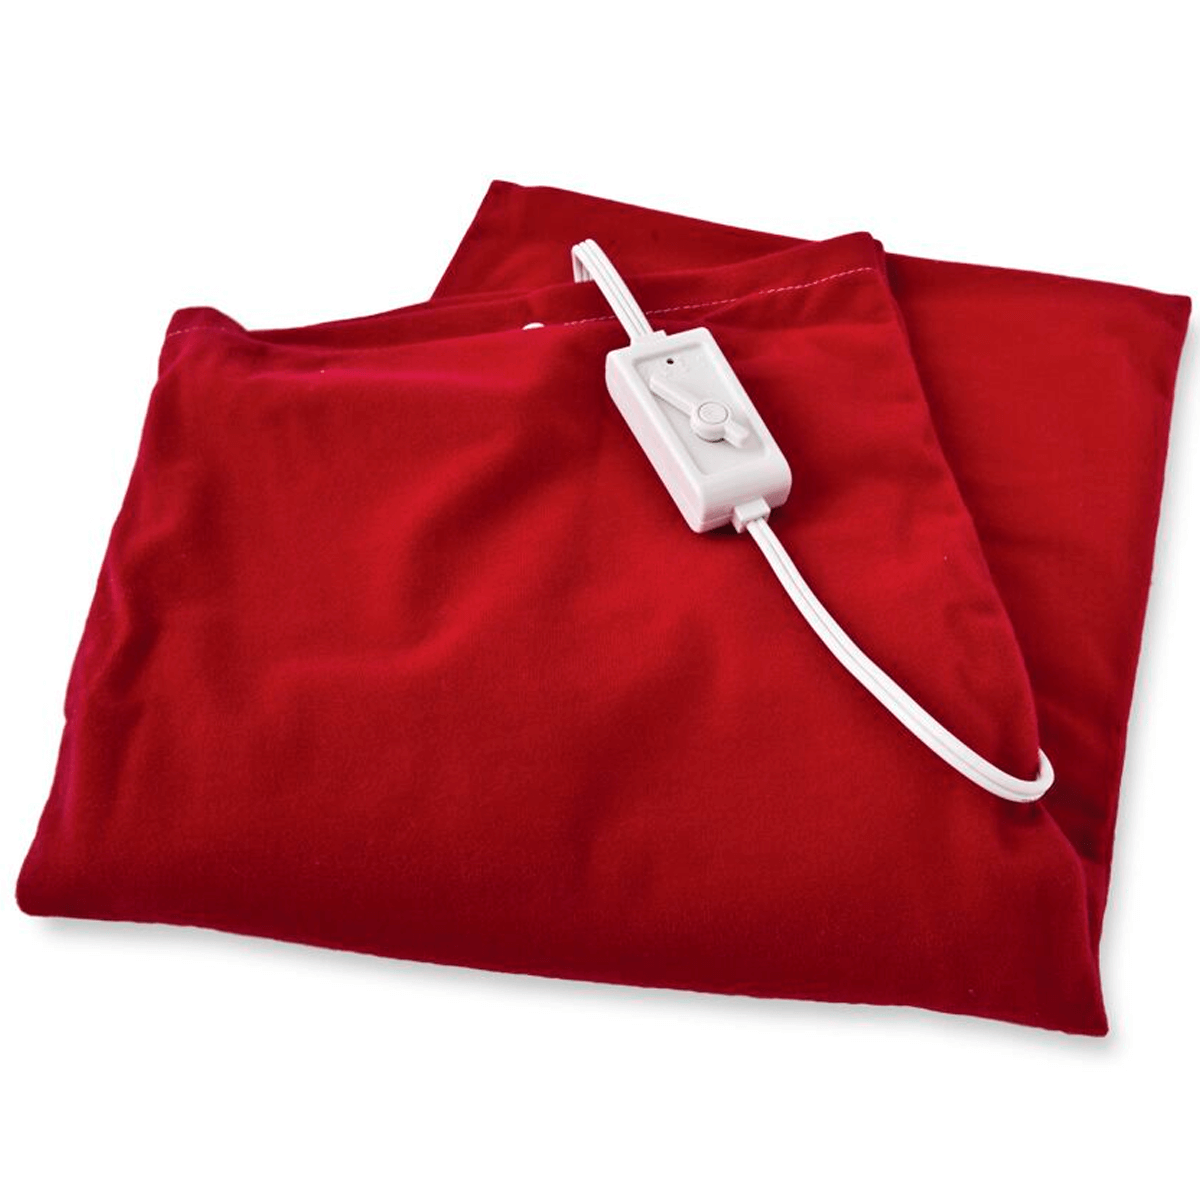 PMT Thermotech Conventional Moist Heating Pad king